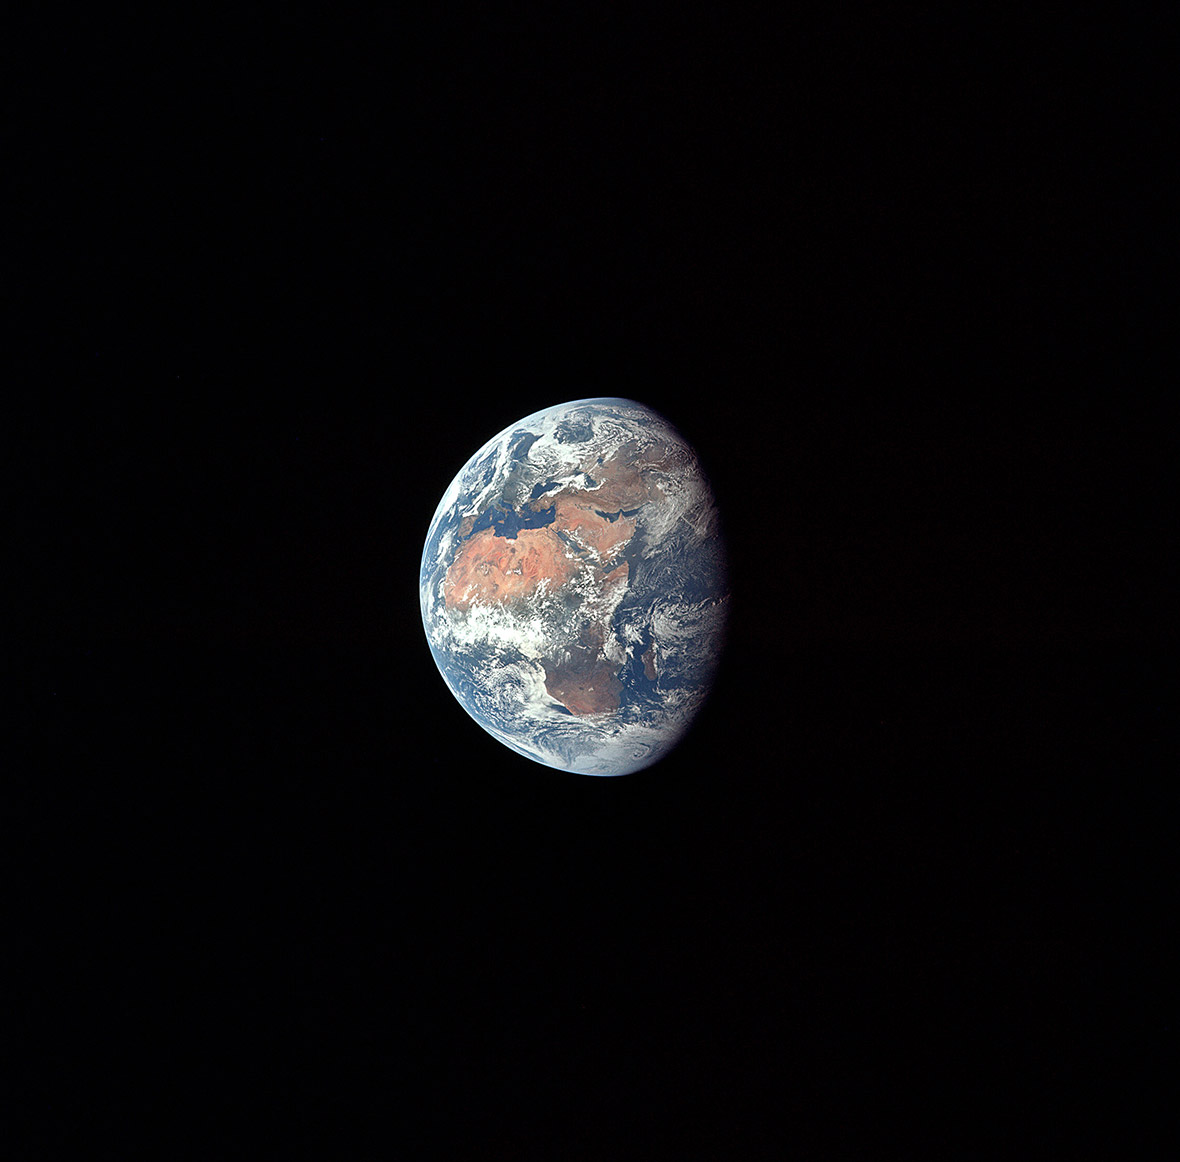 Moon Landing Anniversary: Apollo 11 Mission in Pictures